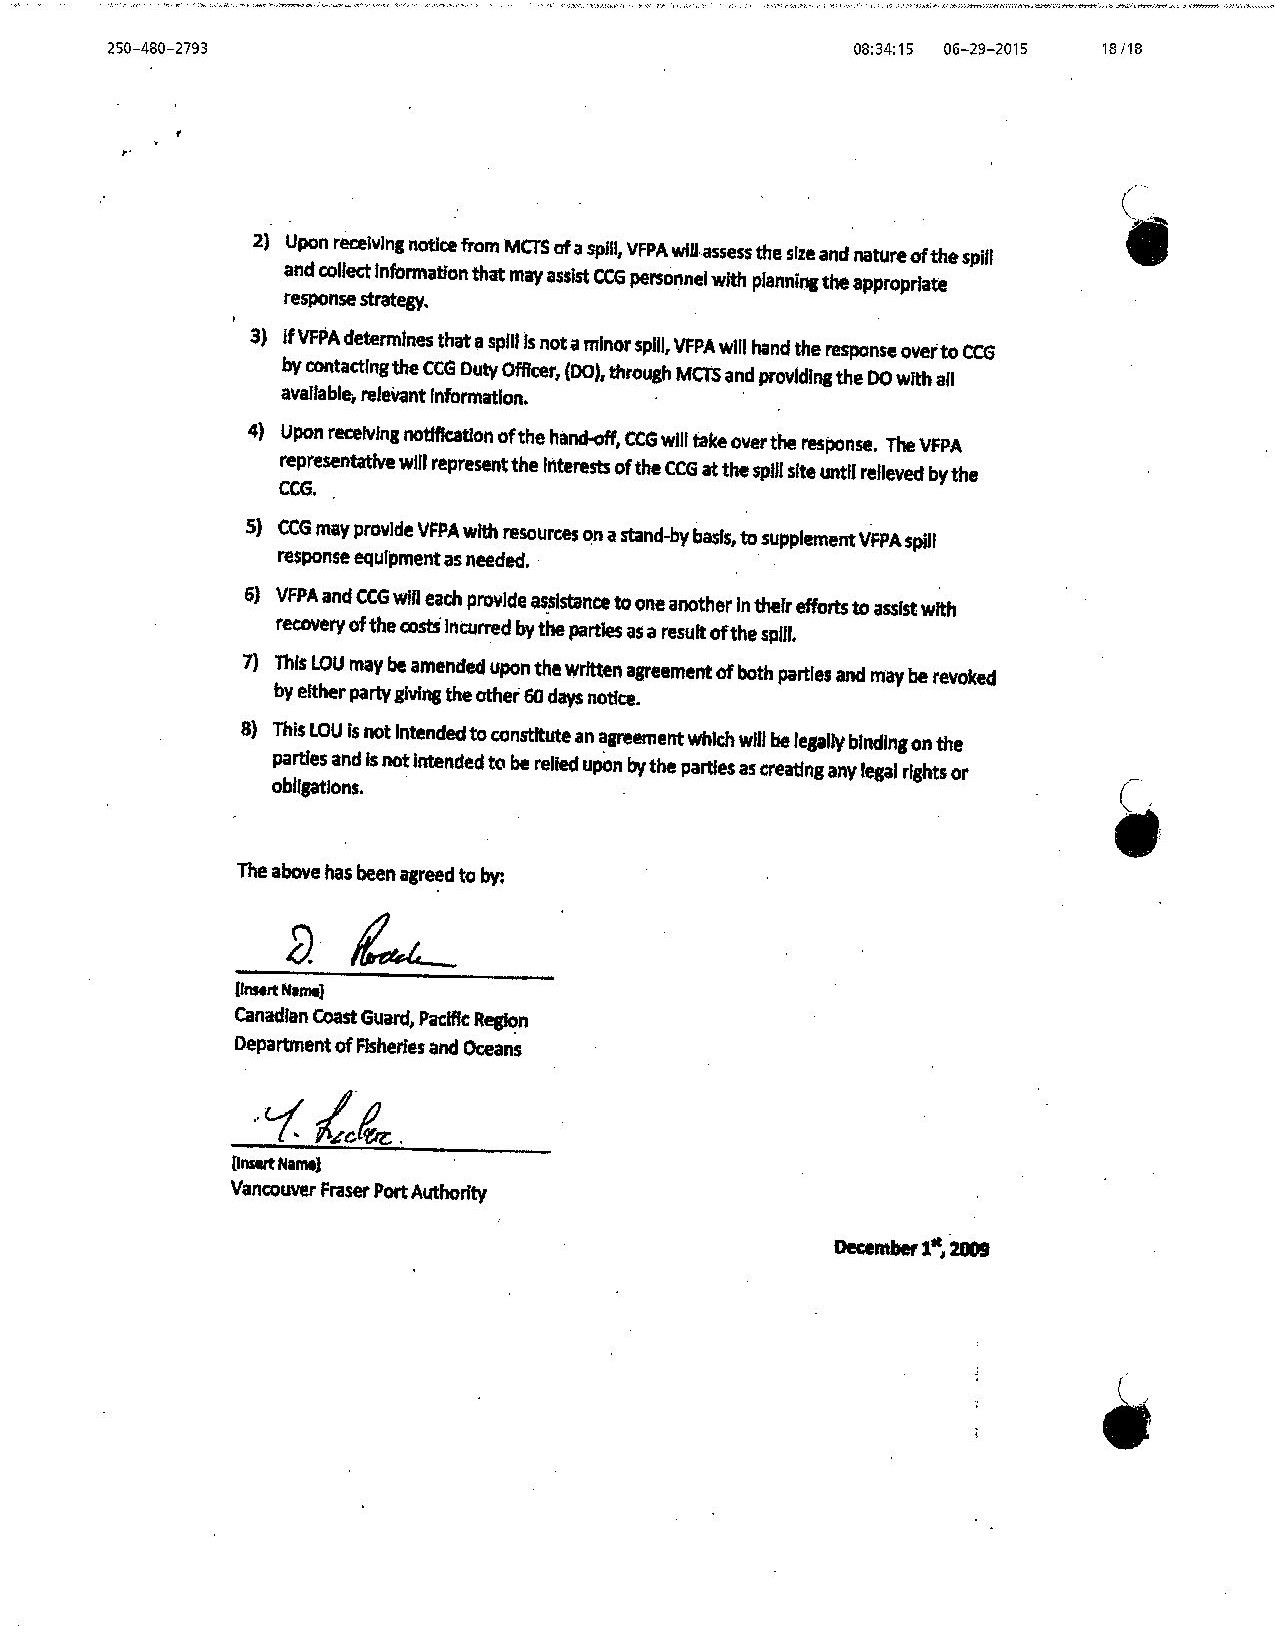 Scan of page 2 of the Letter of Understanding between CCG and EC Western Region and the Vancouver Fraser Port Authority